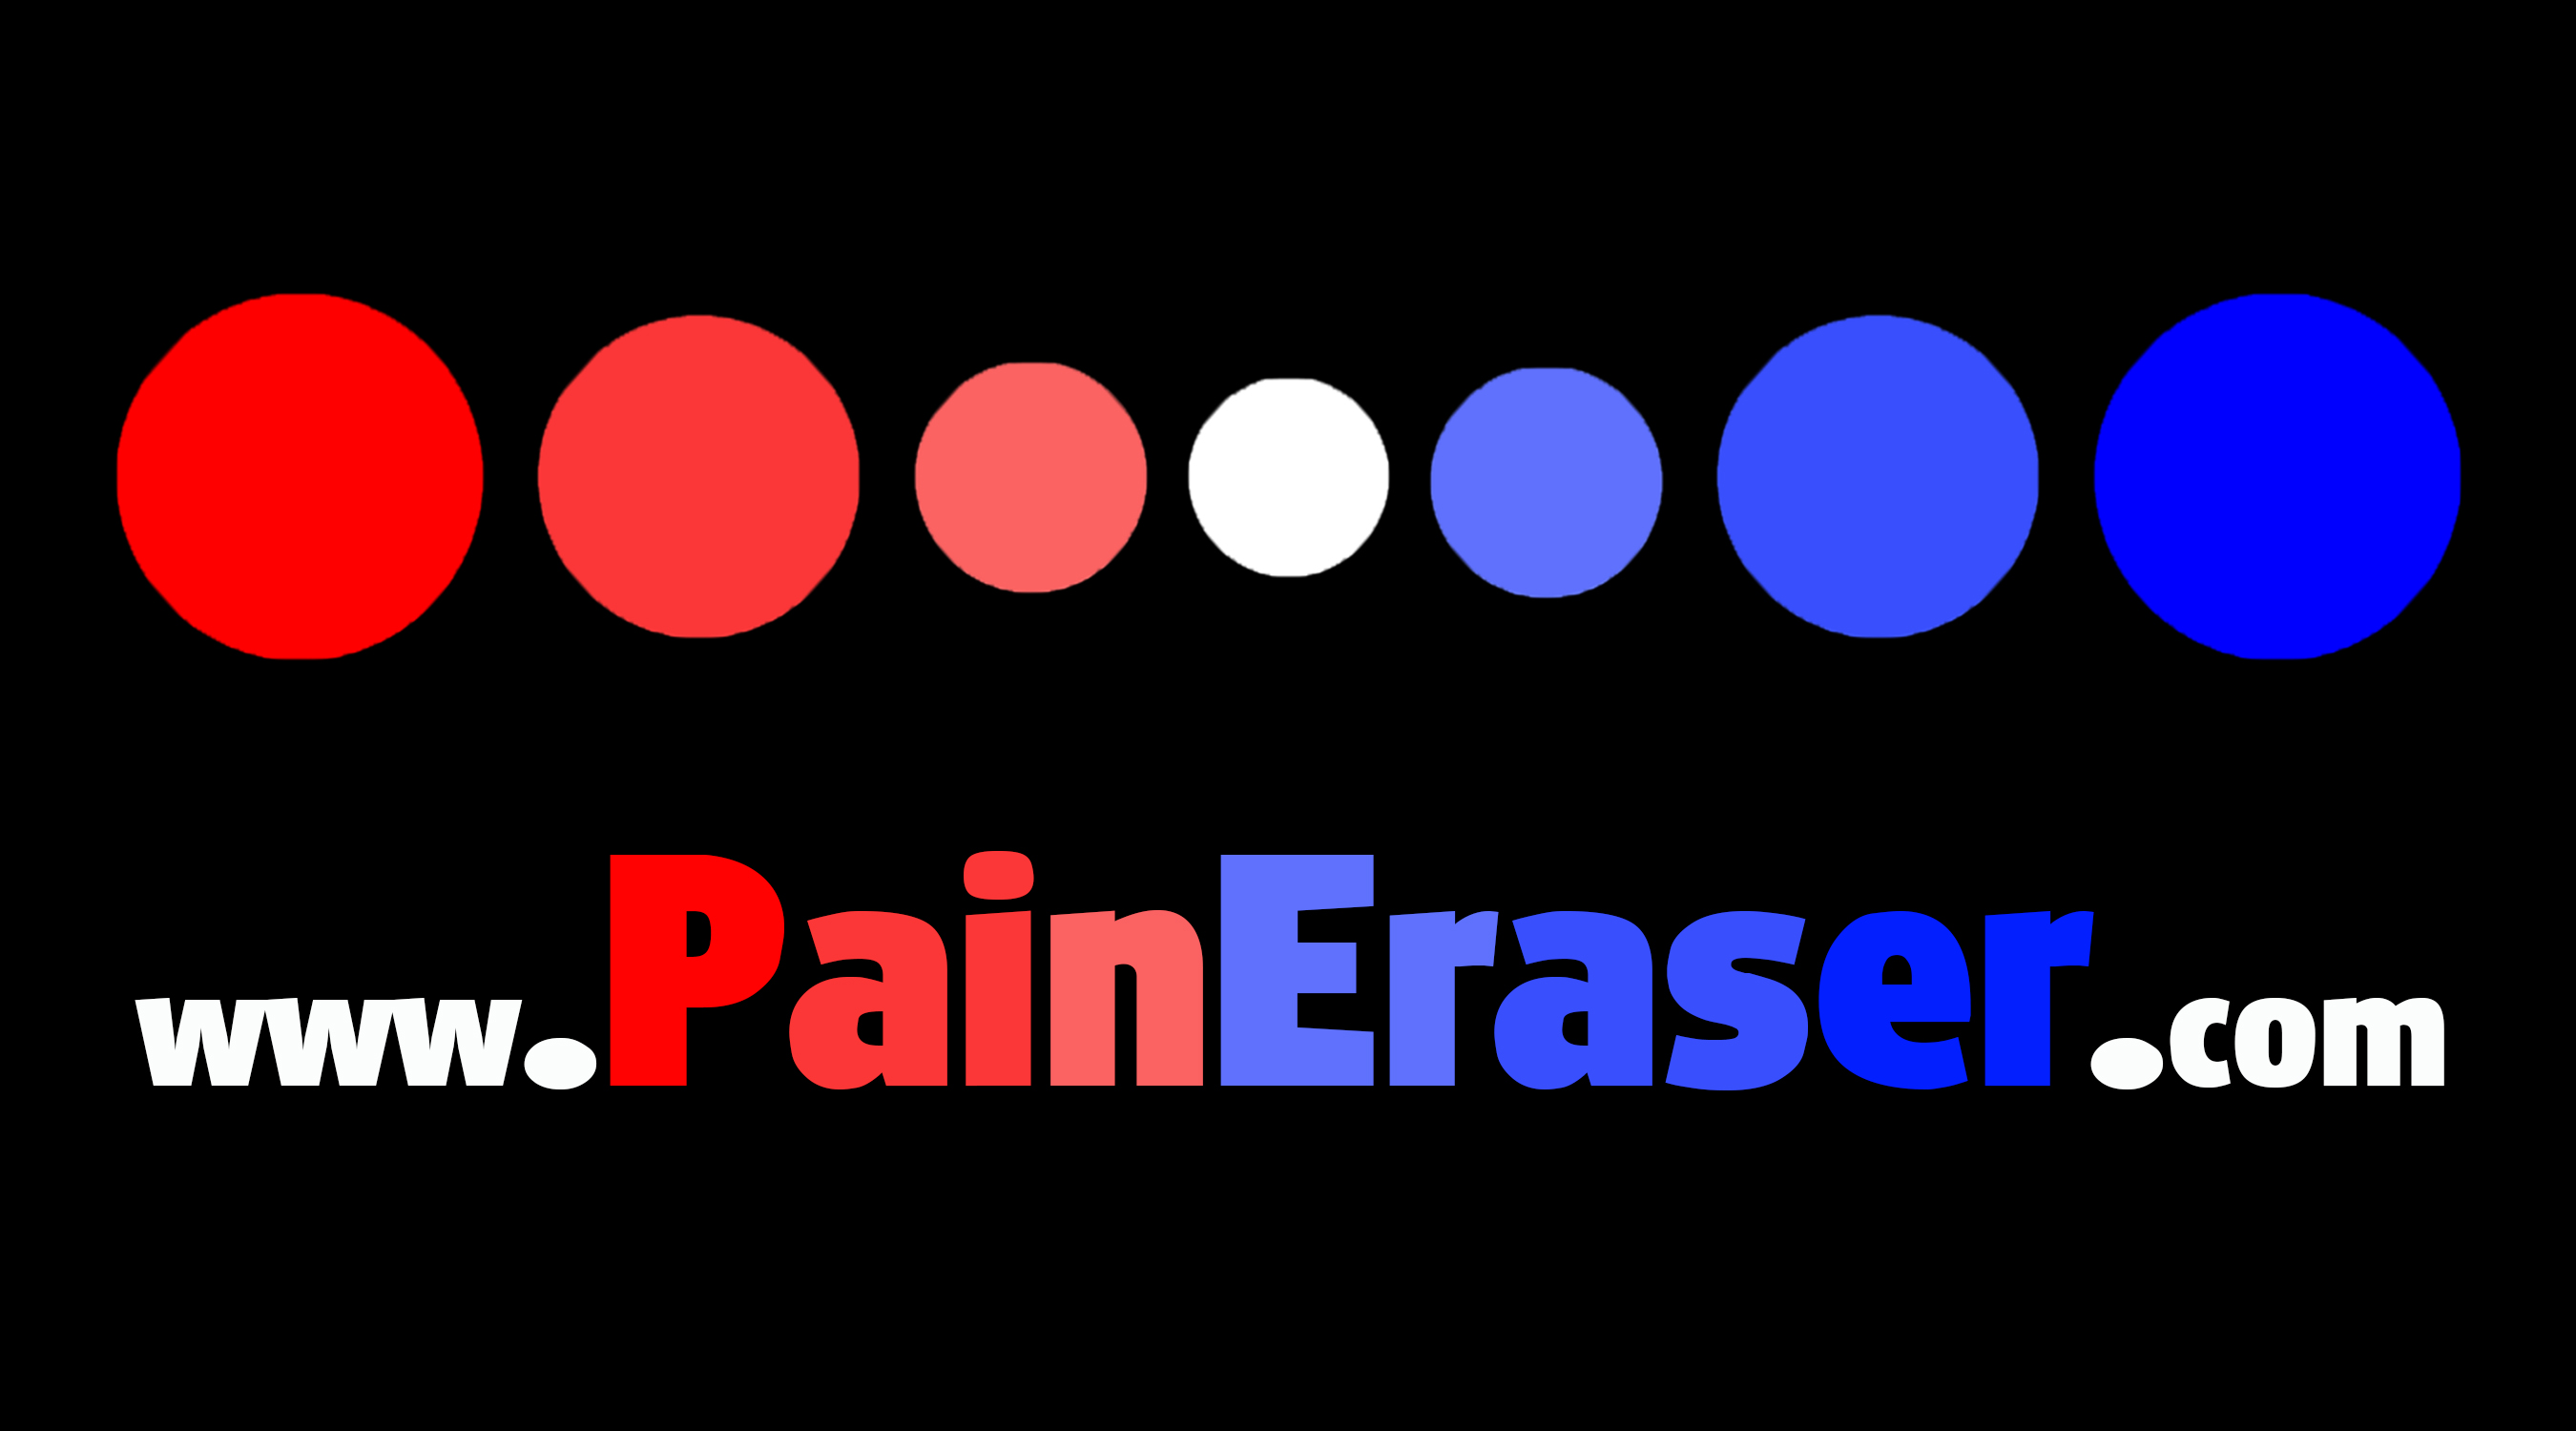 PainEraser Coupons and Promo Code